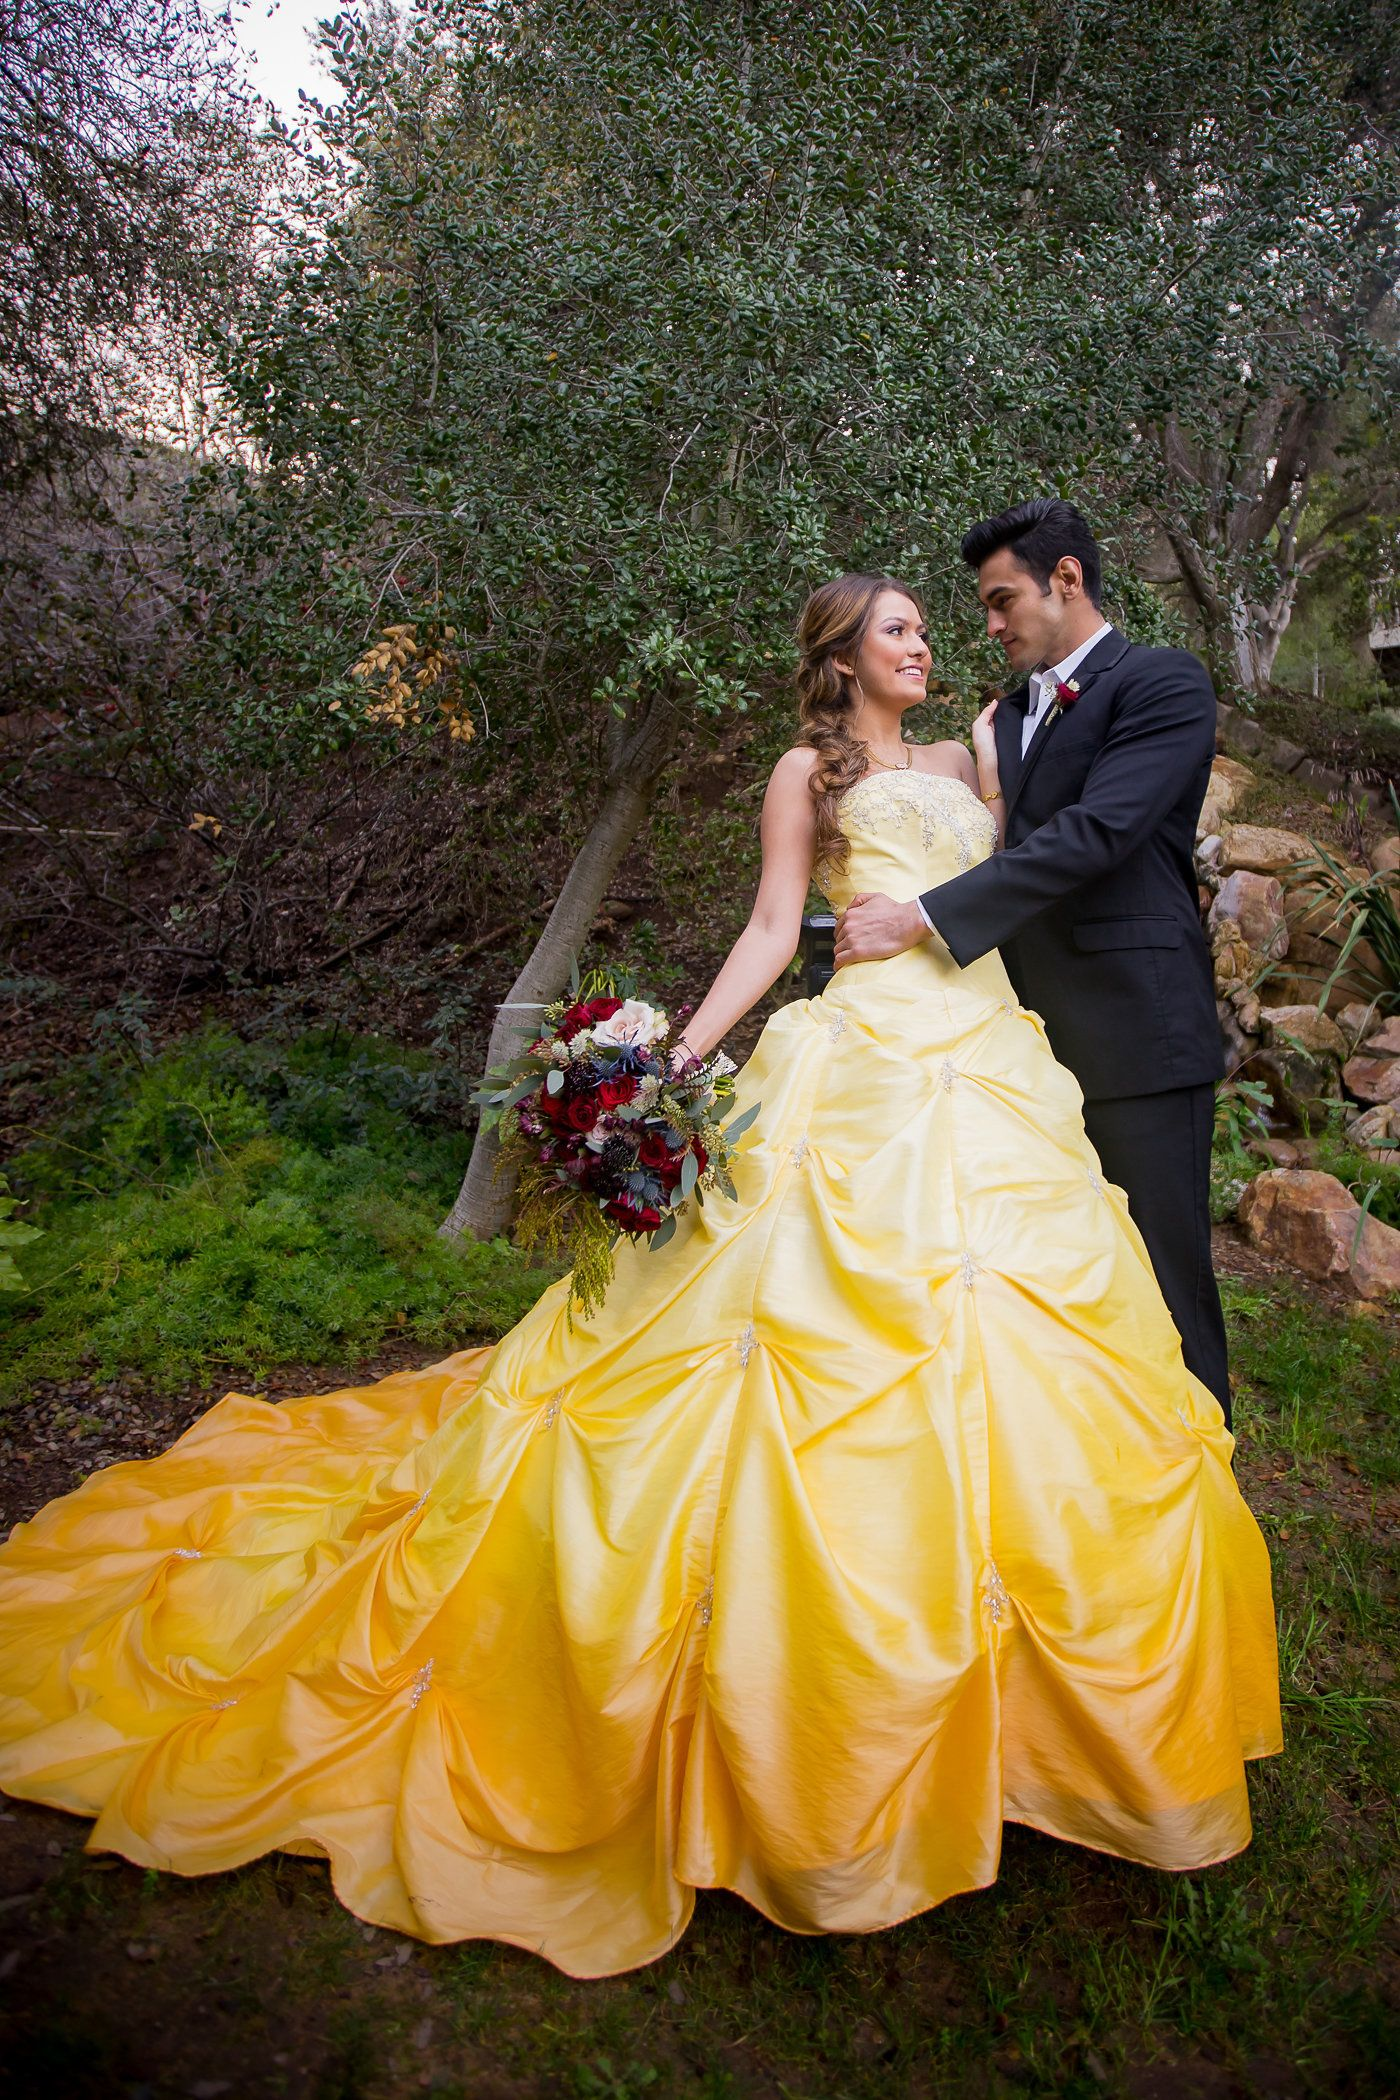 This 'Beauty And The Beast' Wedding Is Every Disney-Lover's